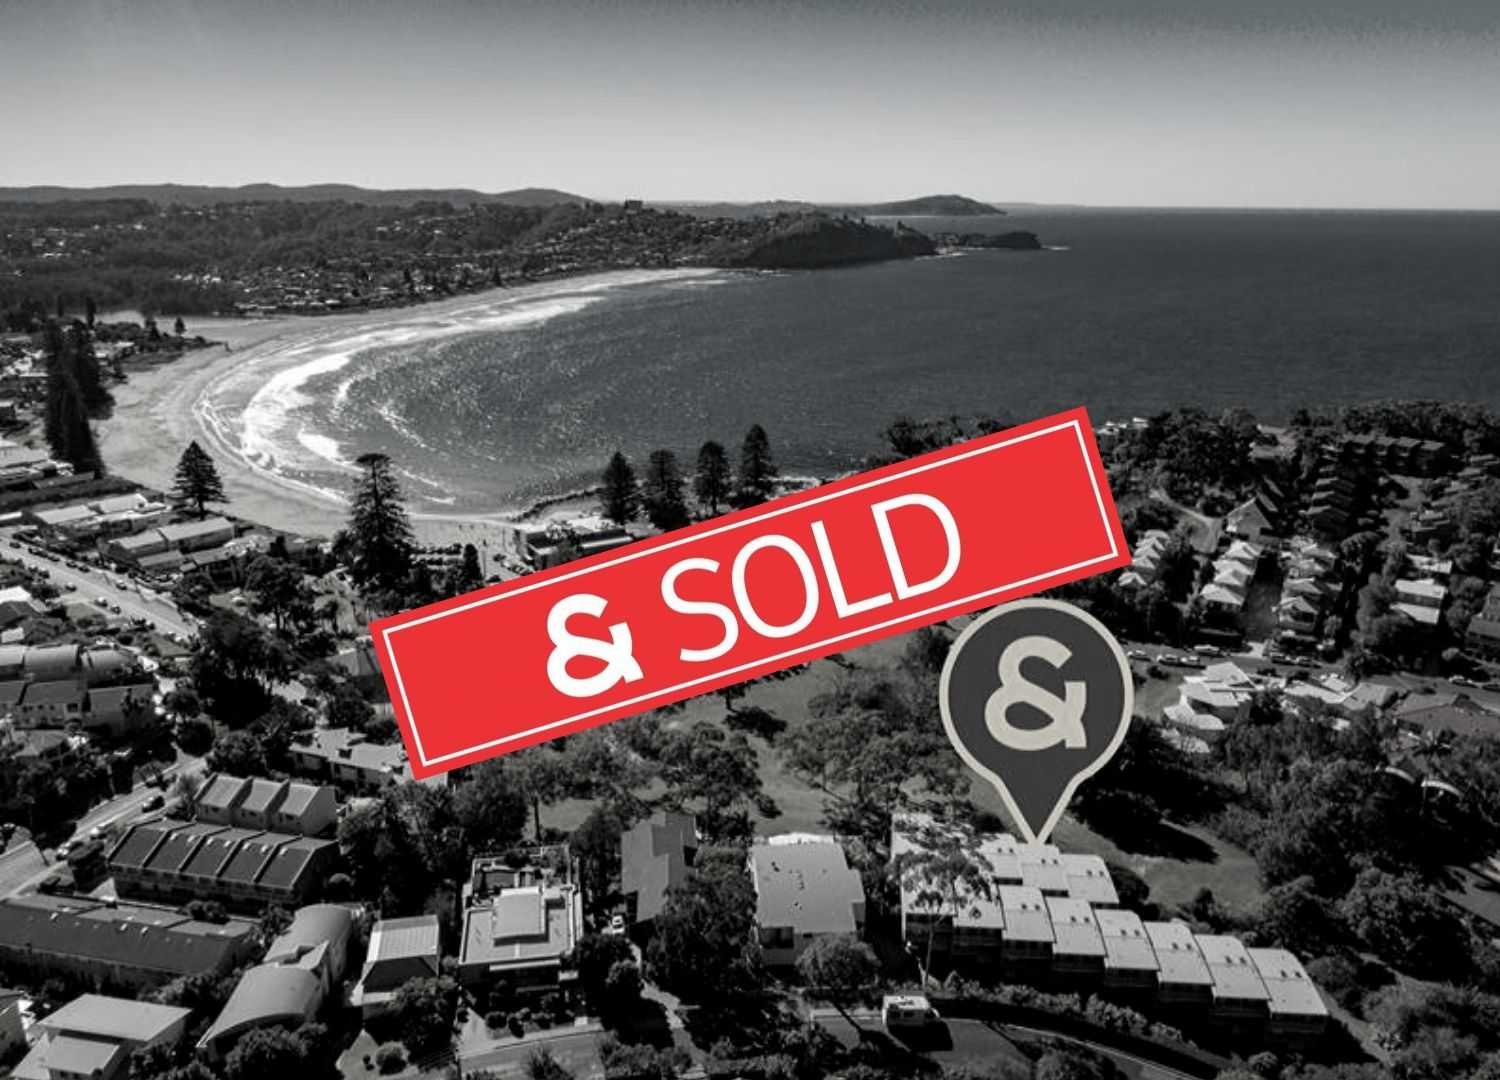 Sign And Drive 45 >> Sold 10 45 Avoca Drive Avoca Beach Nsw 2251 On 29 Nov